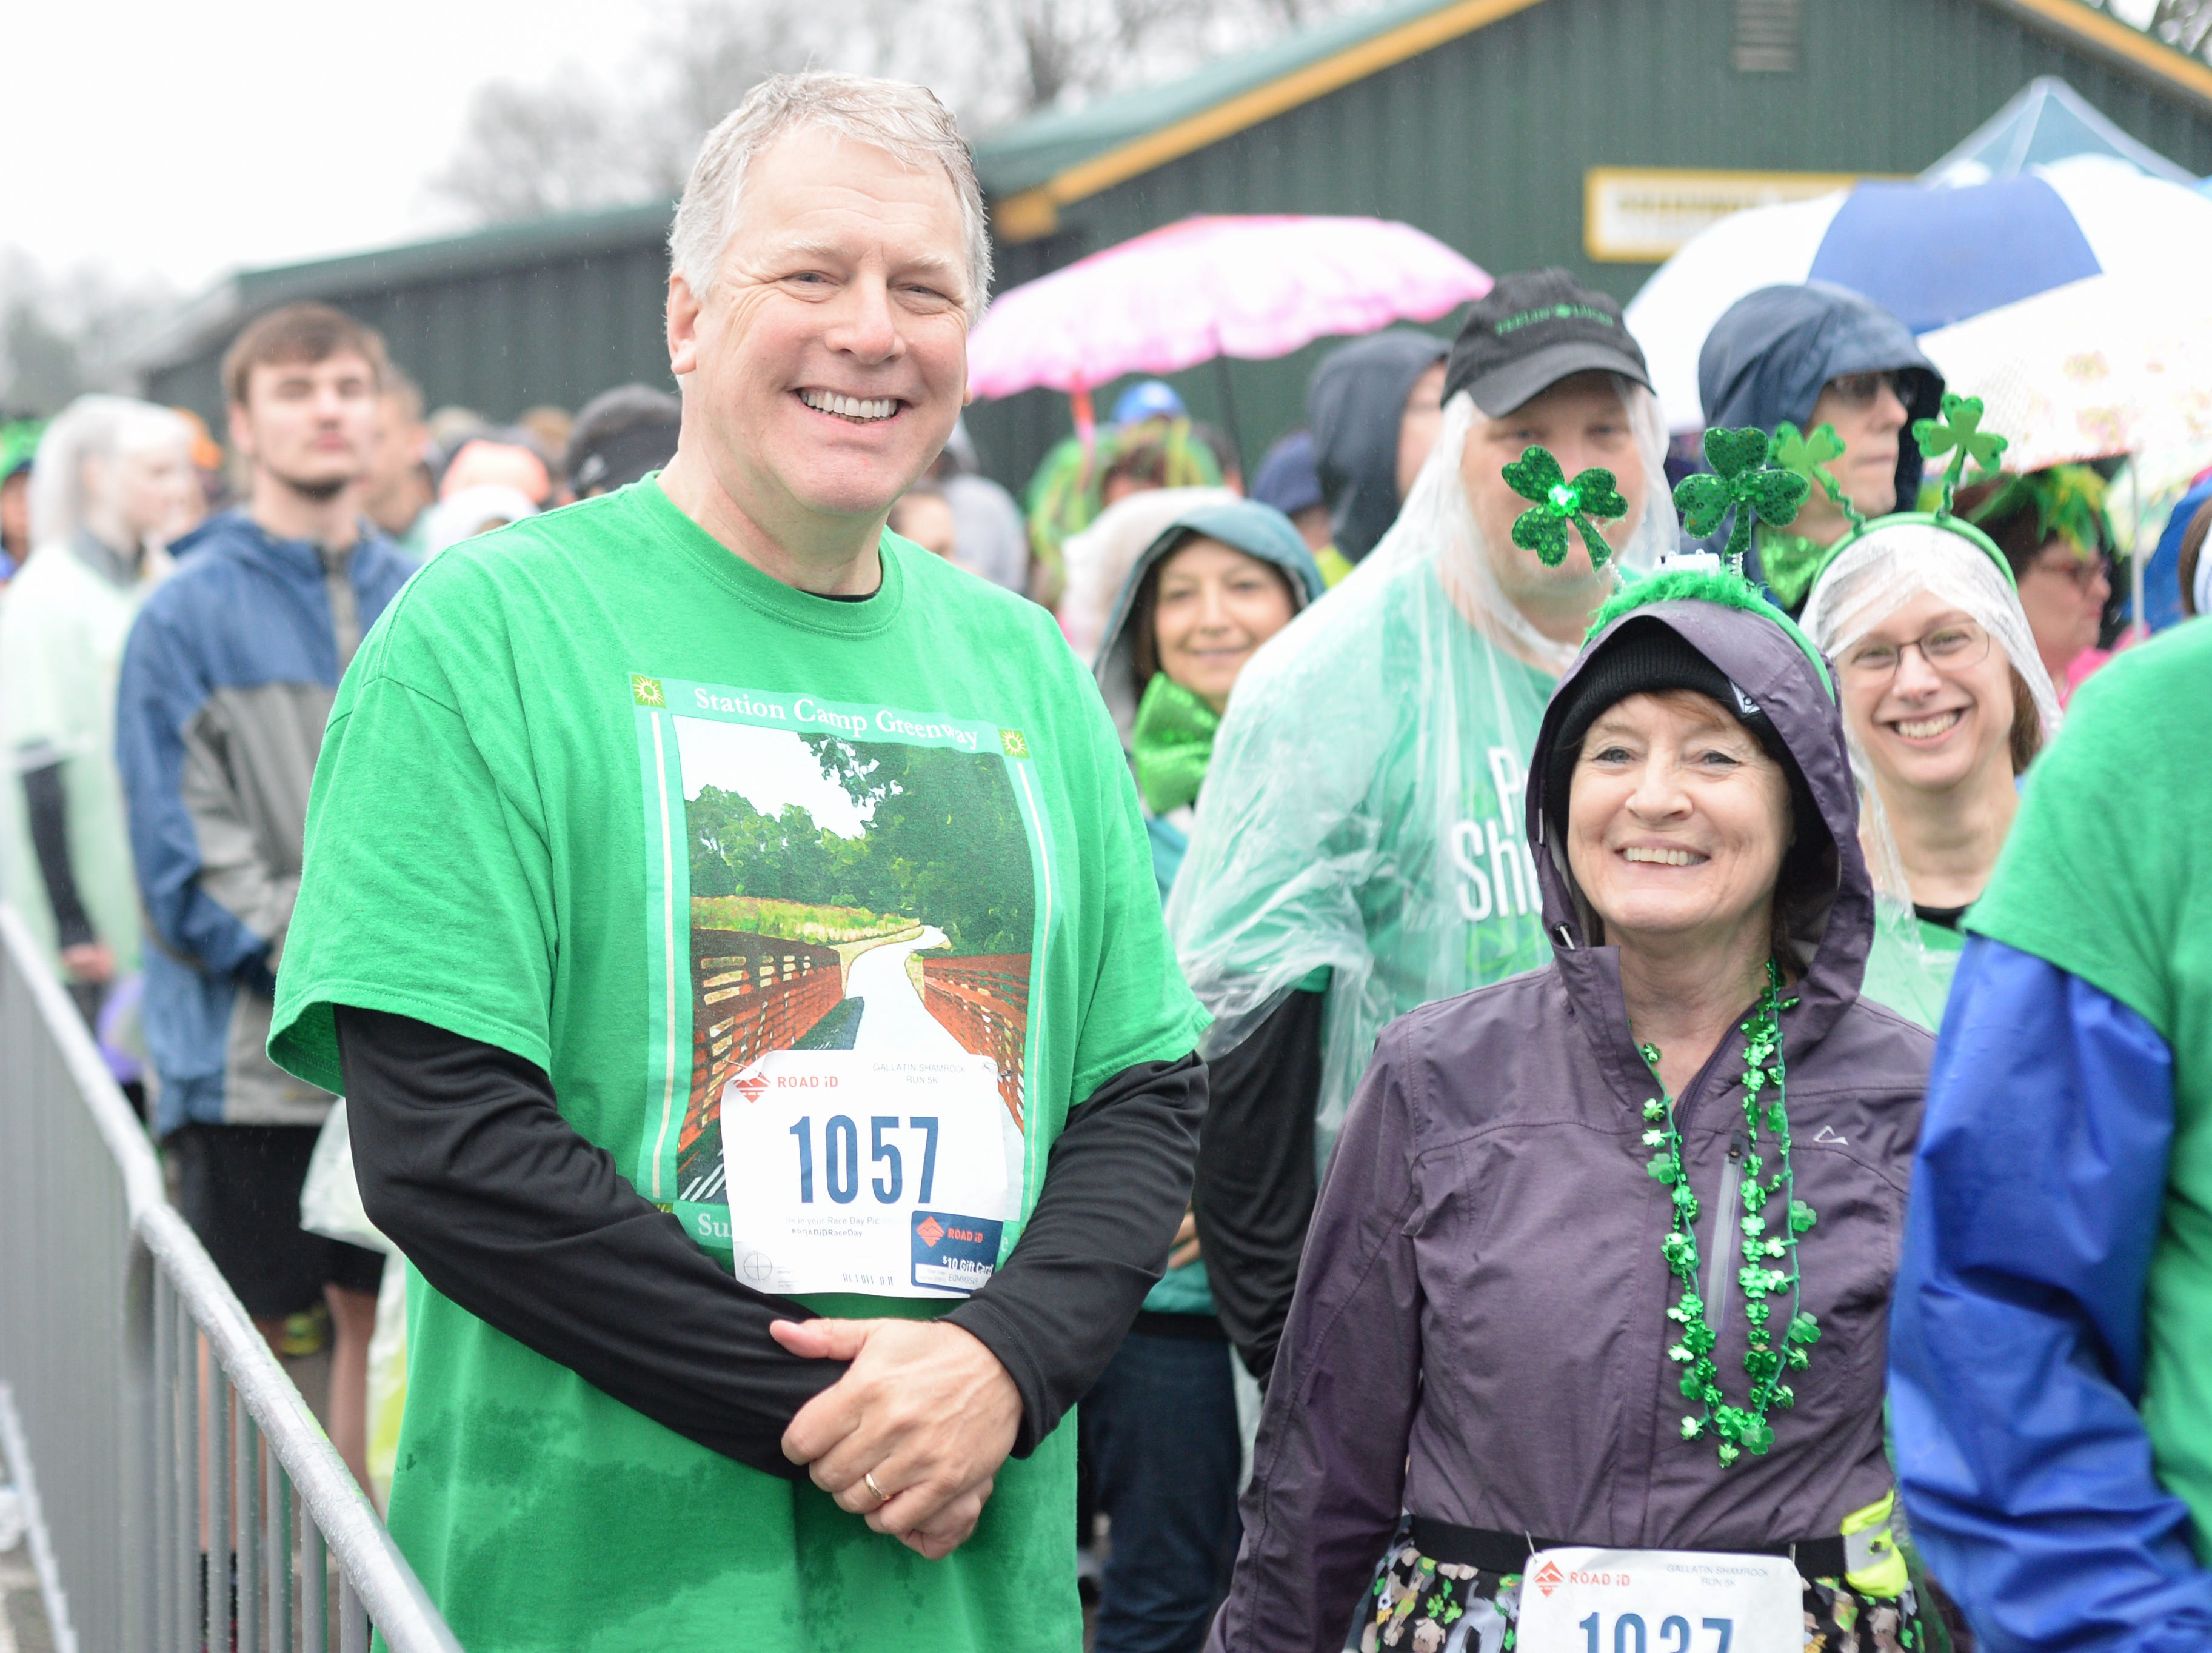 The community came together for the Gallatin Shamrock Run on Saturday, March 9. Proceeds from the event are used to fund grants through the Gallatin Chamber Foundation for innovative educational programs for students K-12 in the city of Gallatin.